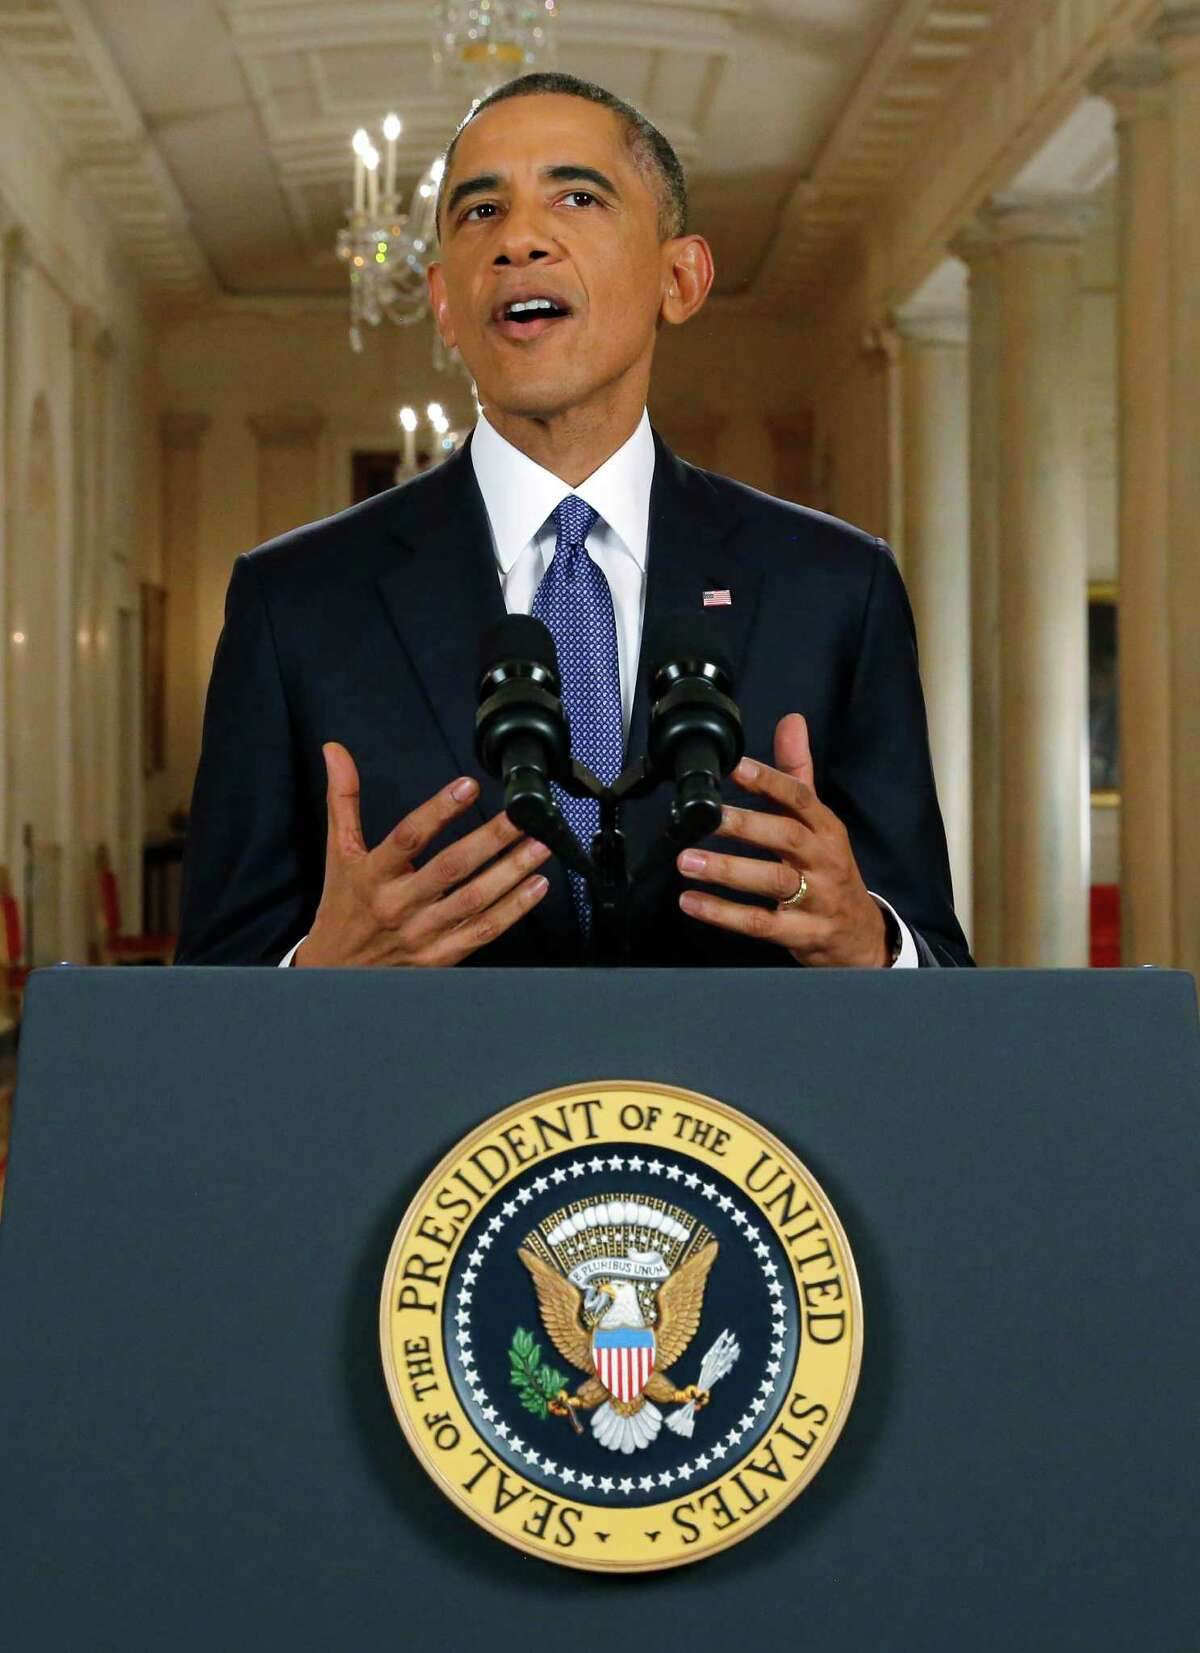 President Barack Obama announces executive actions on immigration during a nationally televised address from the White House in Washington, Thursday, Nov. 20, 2014. Obama outlined a plan on Thursday to relax U.S. immigration policy, affecting as many as 5 million people.